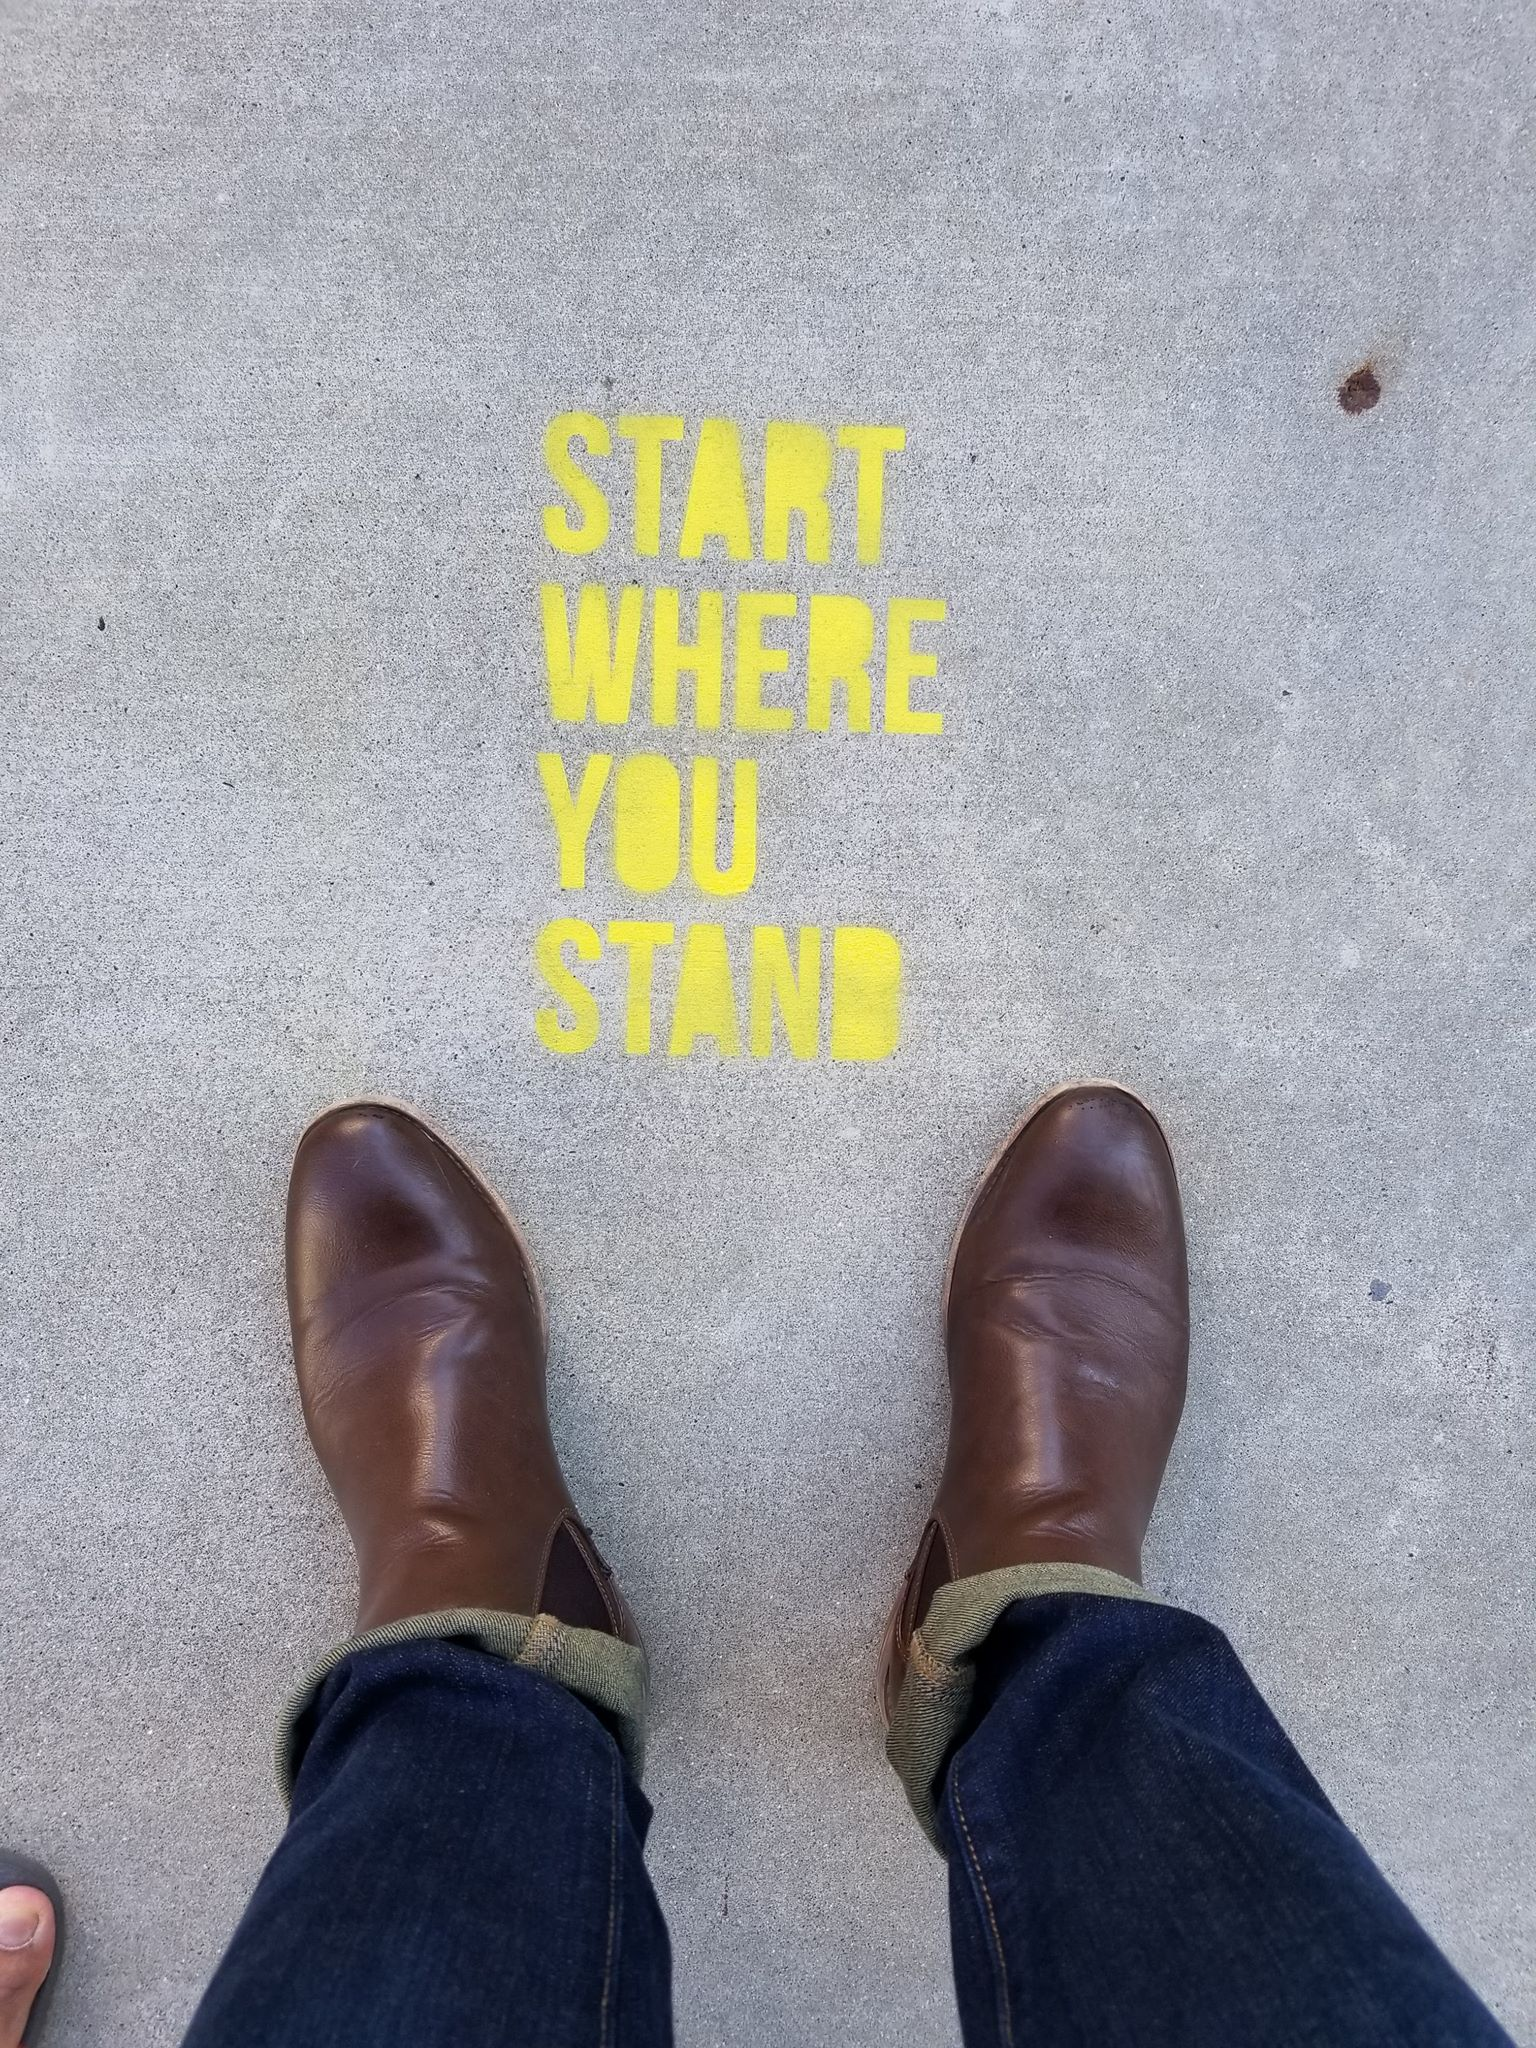 [Image] Start Where You Stand